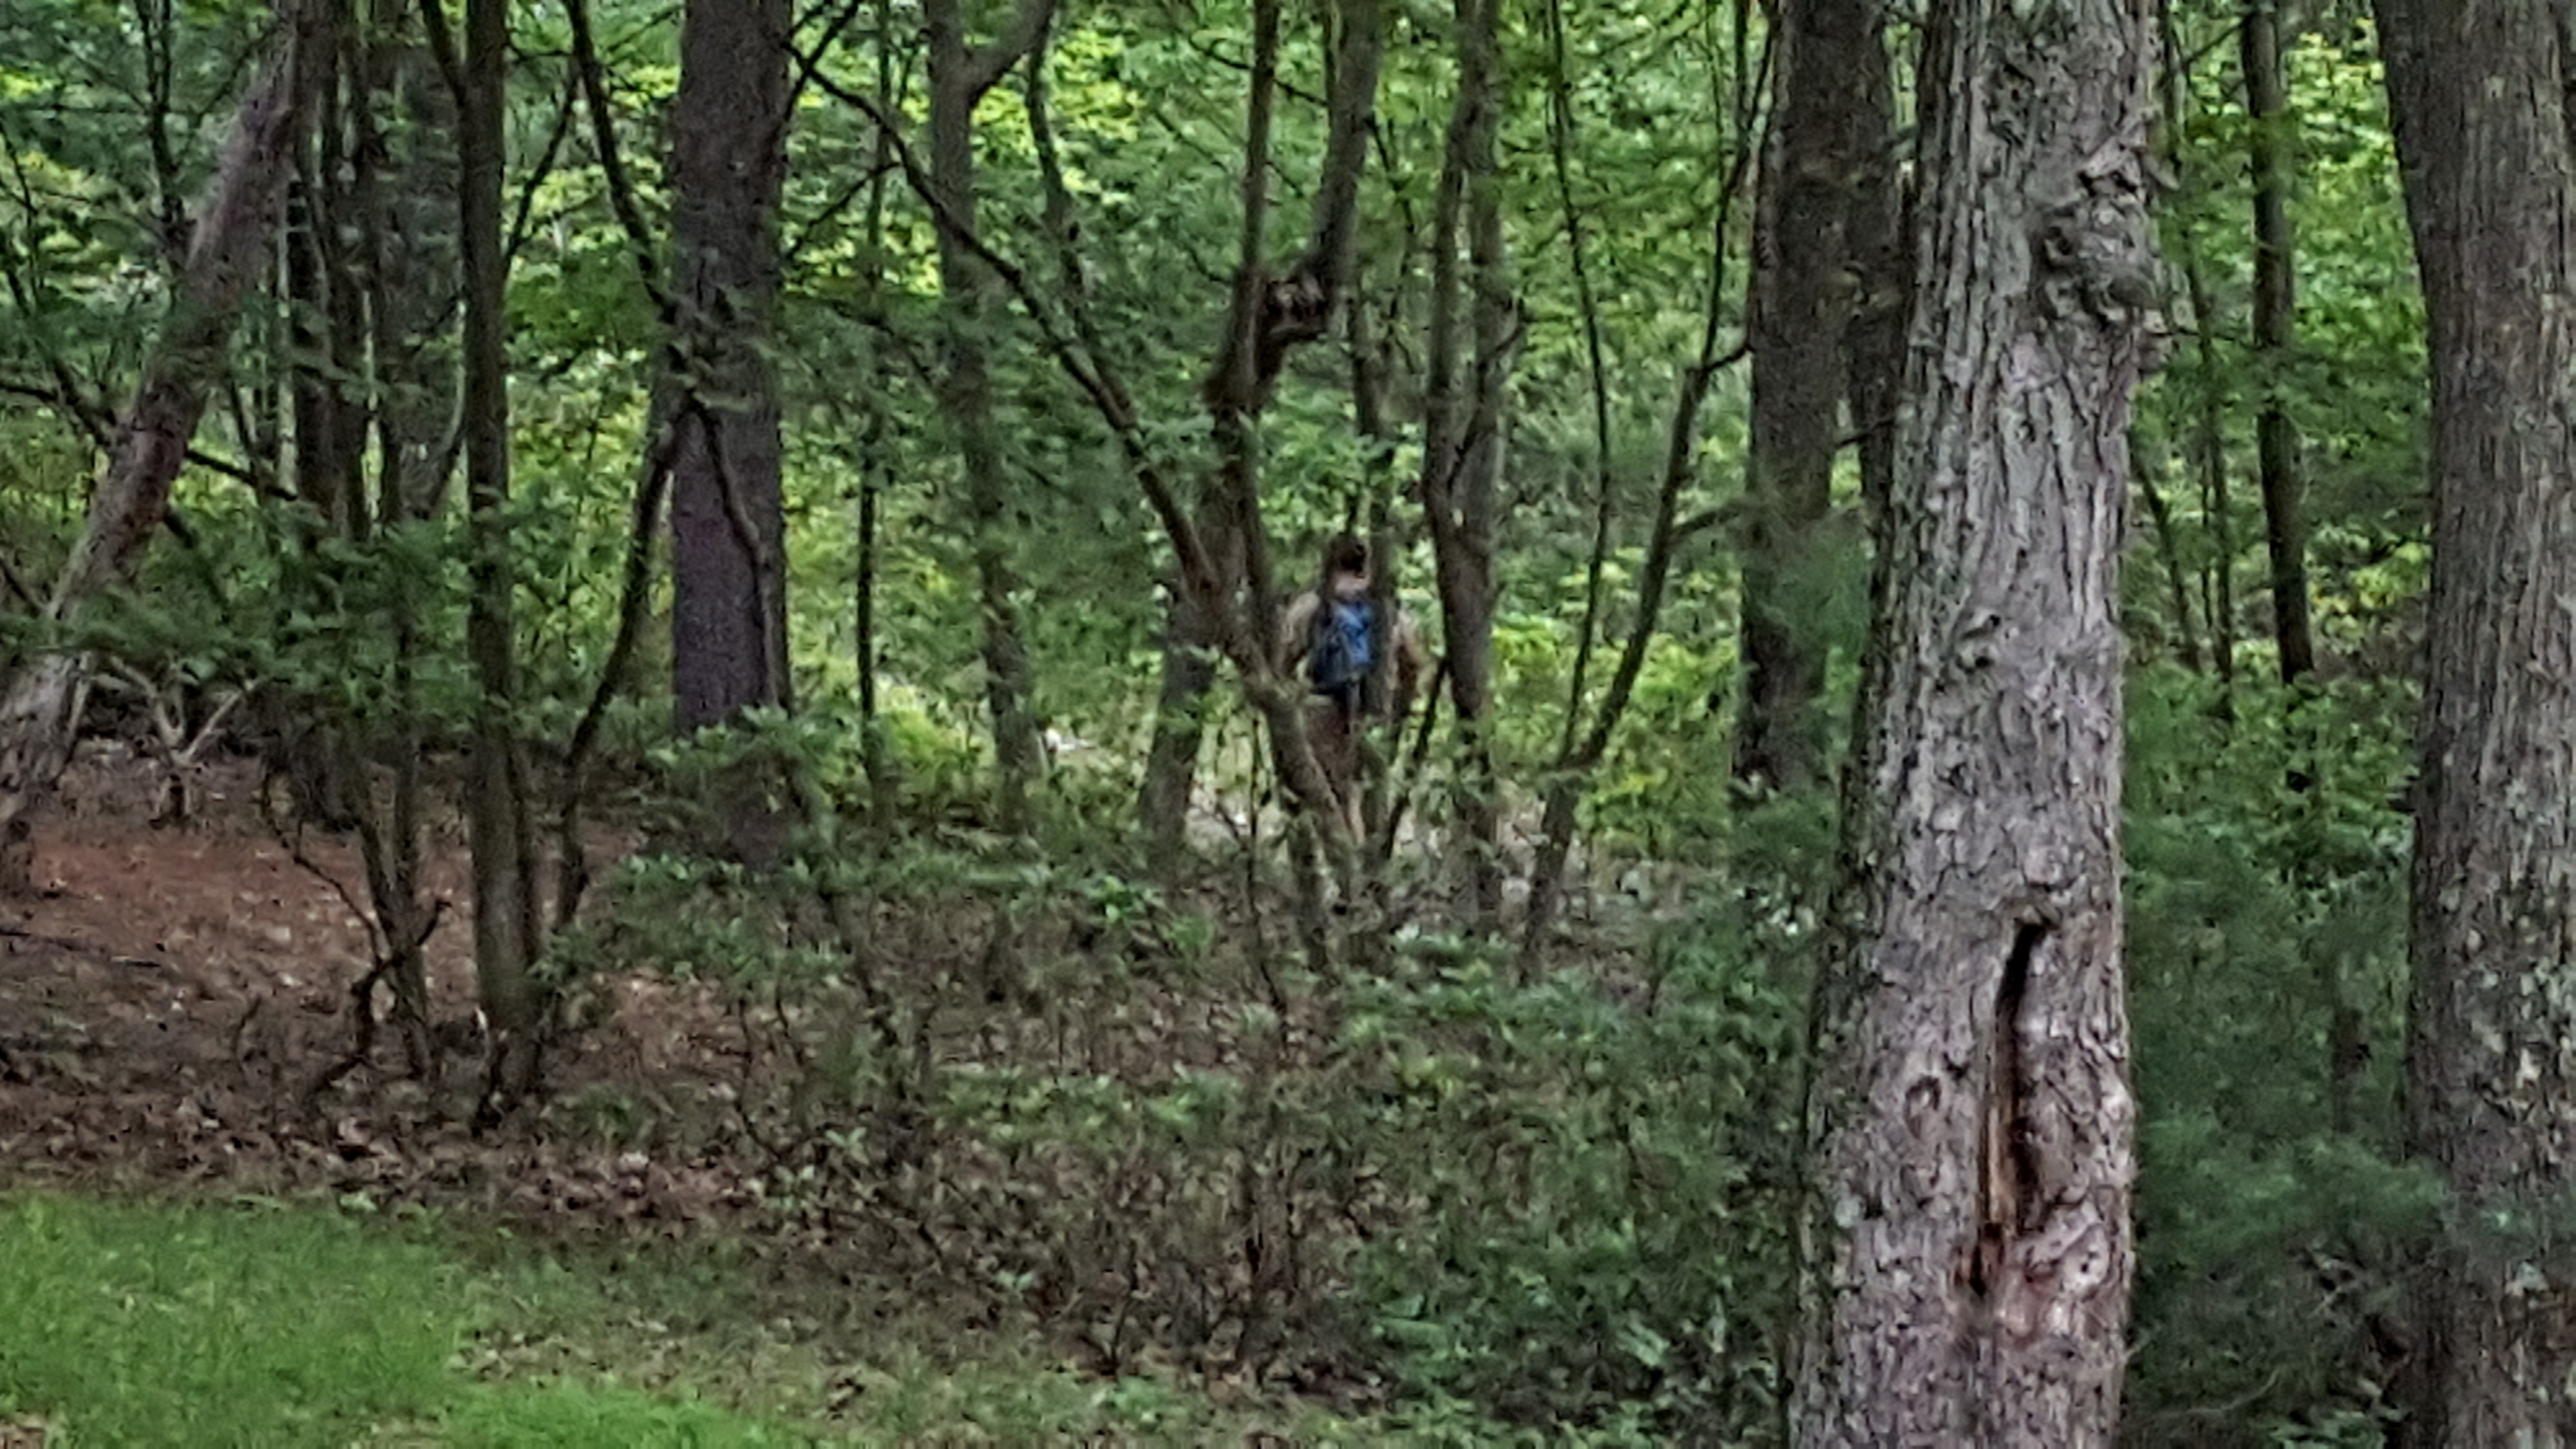 Brothers camping naked in the woods